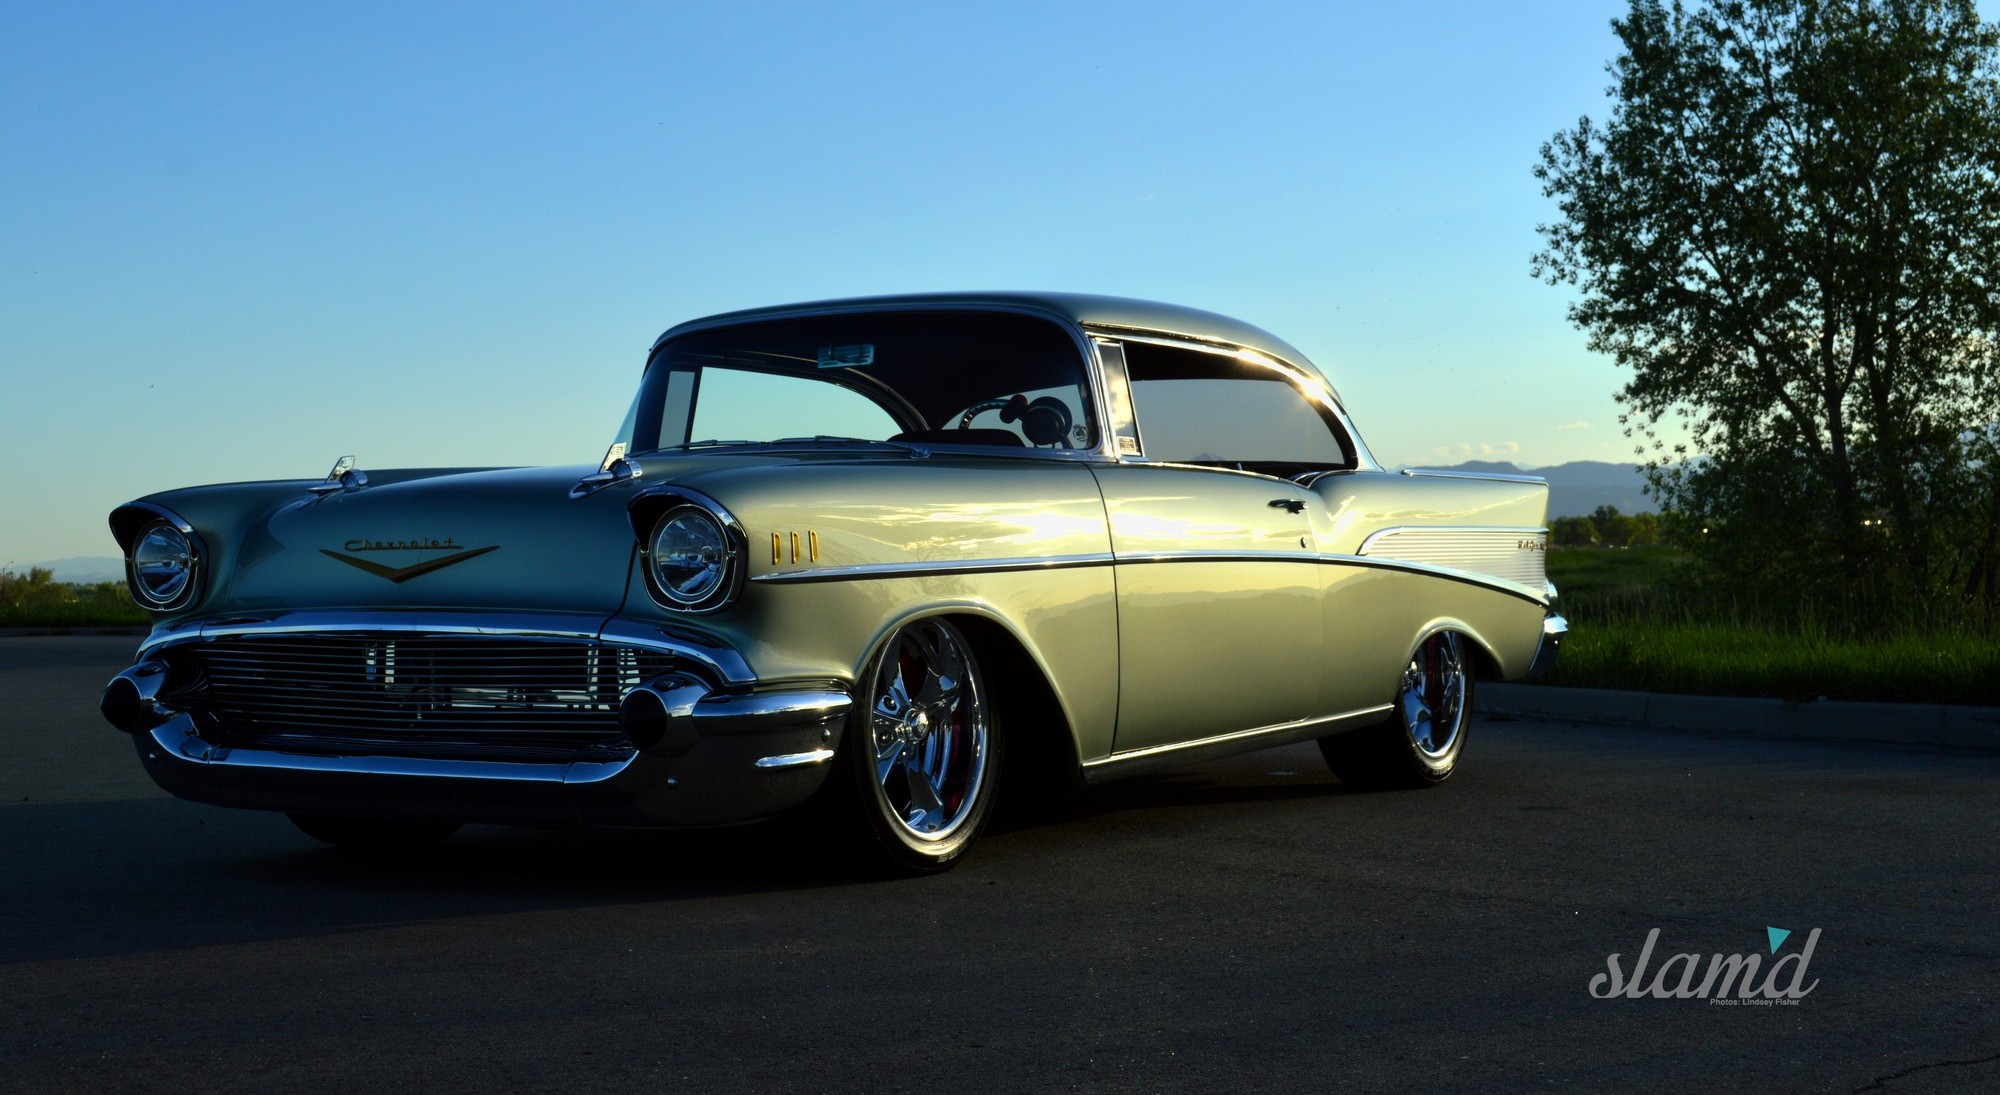 First Car Dreams Marvin Meyers 1957 Bel Air 2 Door Hardtop Slam 57 Chevy Rear Bumper The Love For A Is Like No Other While You May Not Have Had Greatest On Block Way Back In Day Your Vehicle Represented